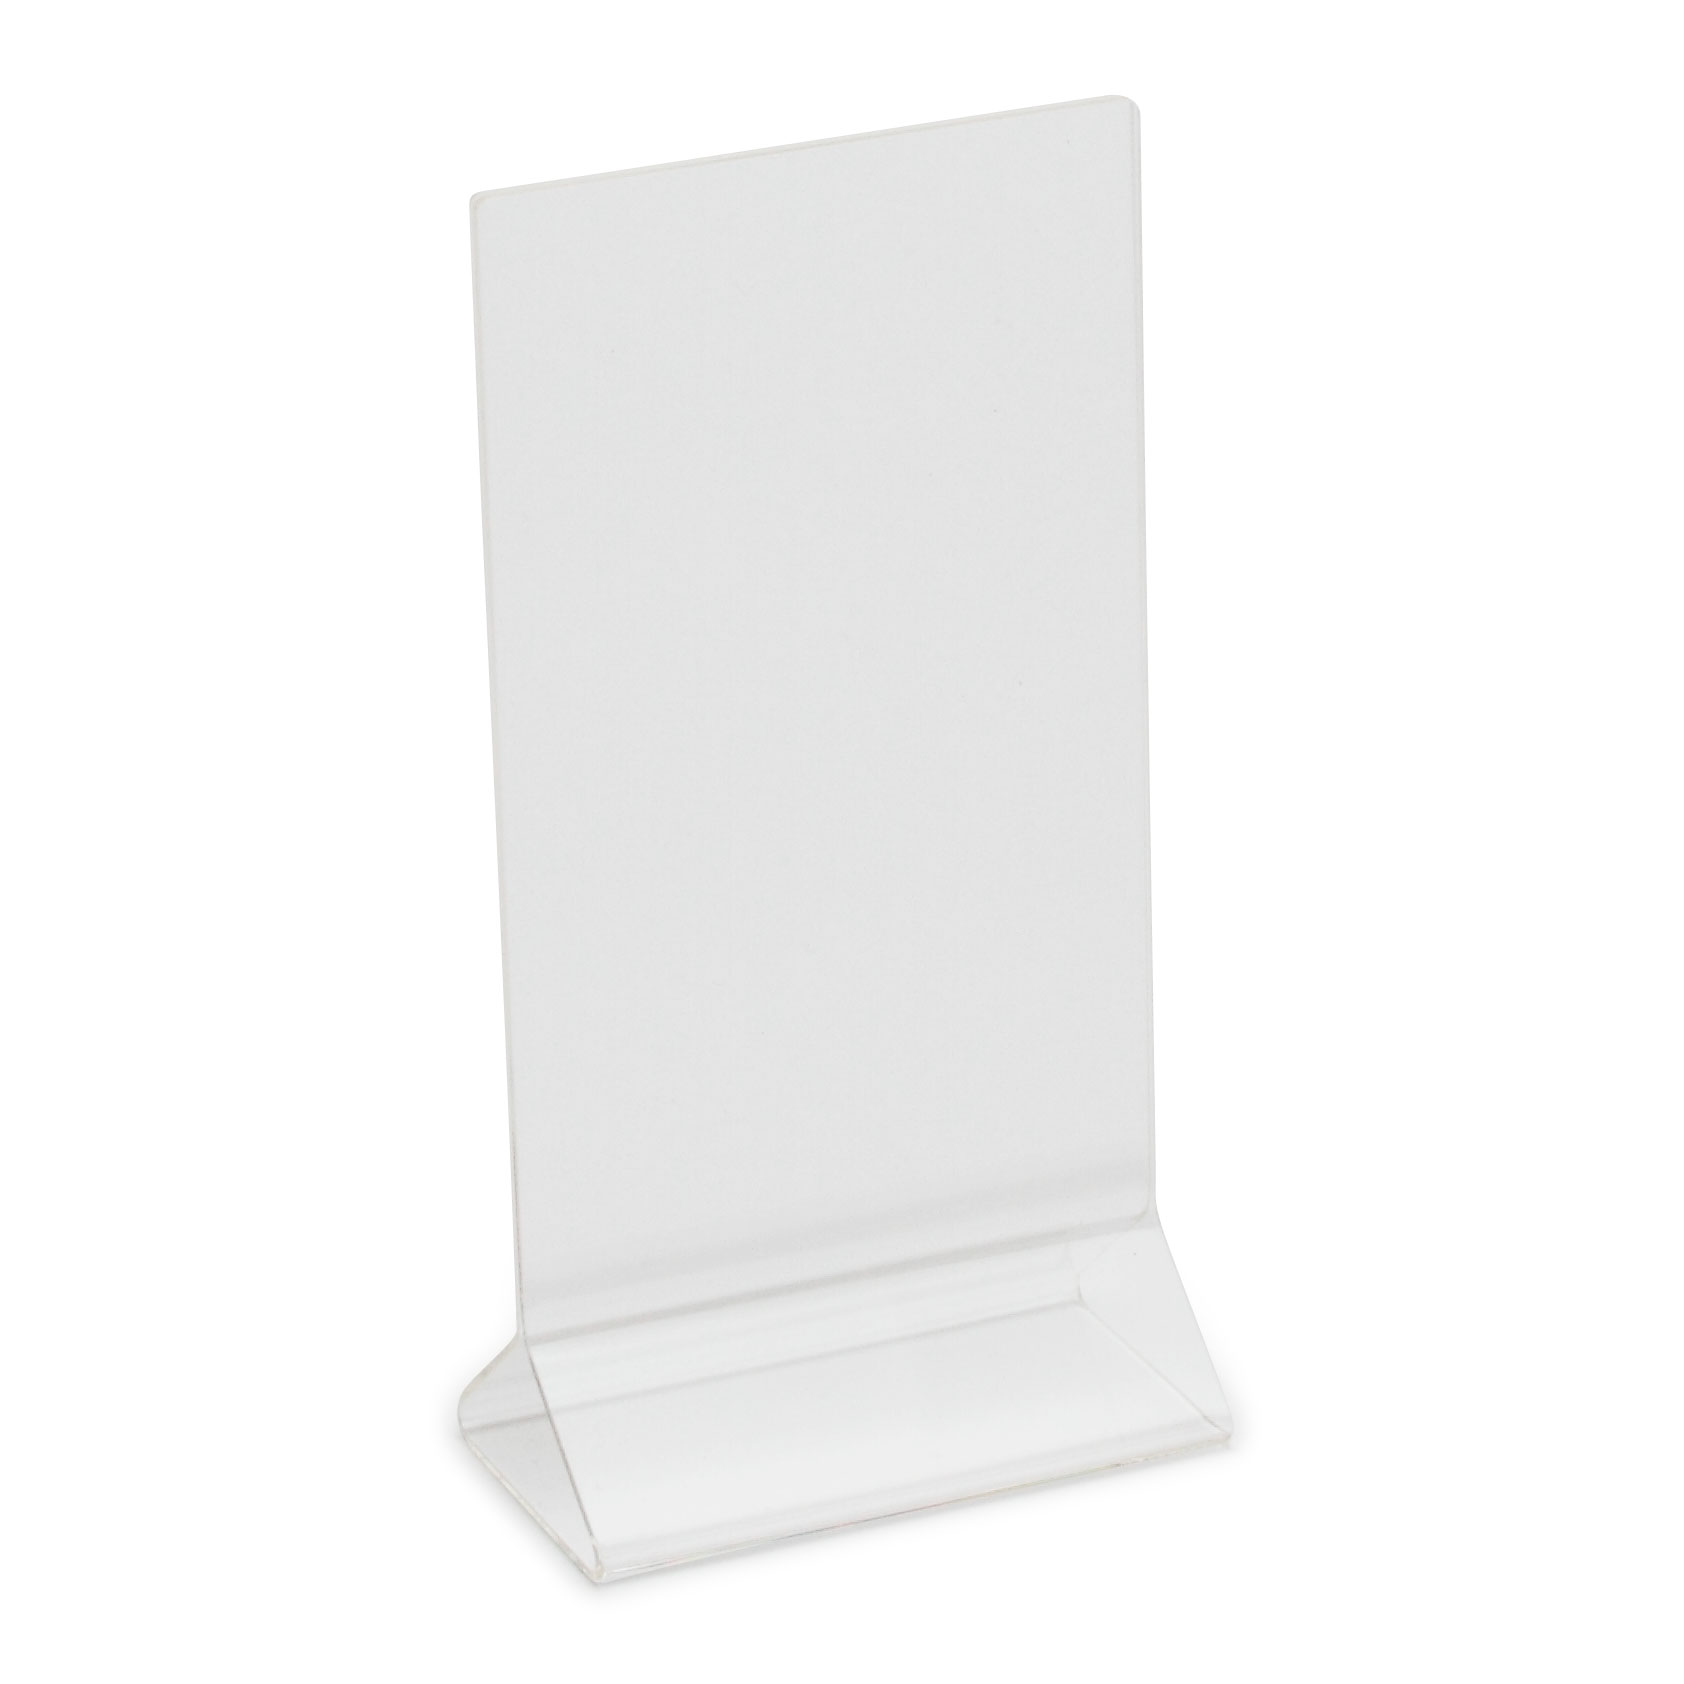 Royal Industries ROY ACH 48 menu card holder / number stand